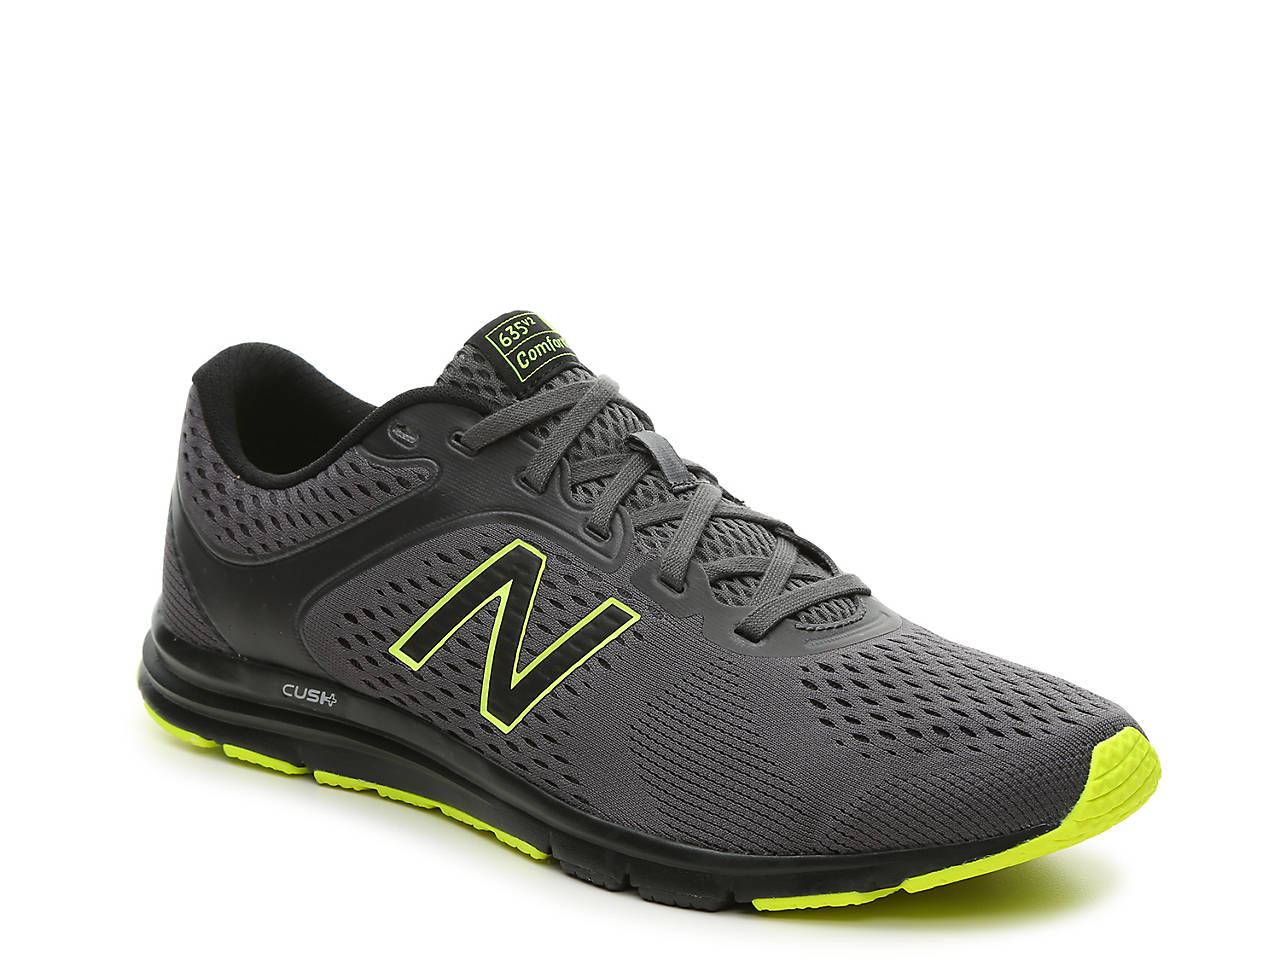 e57c6666 New Balance 635 v2 Lightweight Running Shoe - Men's Men's Shoes | DSW